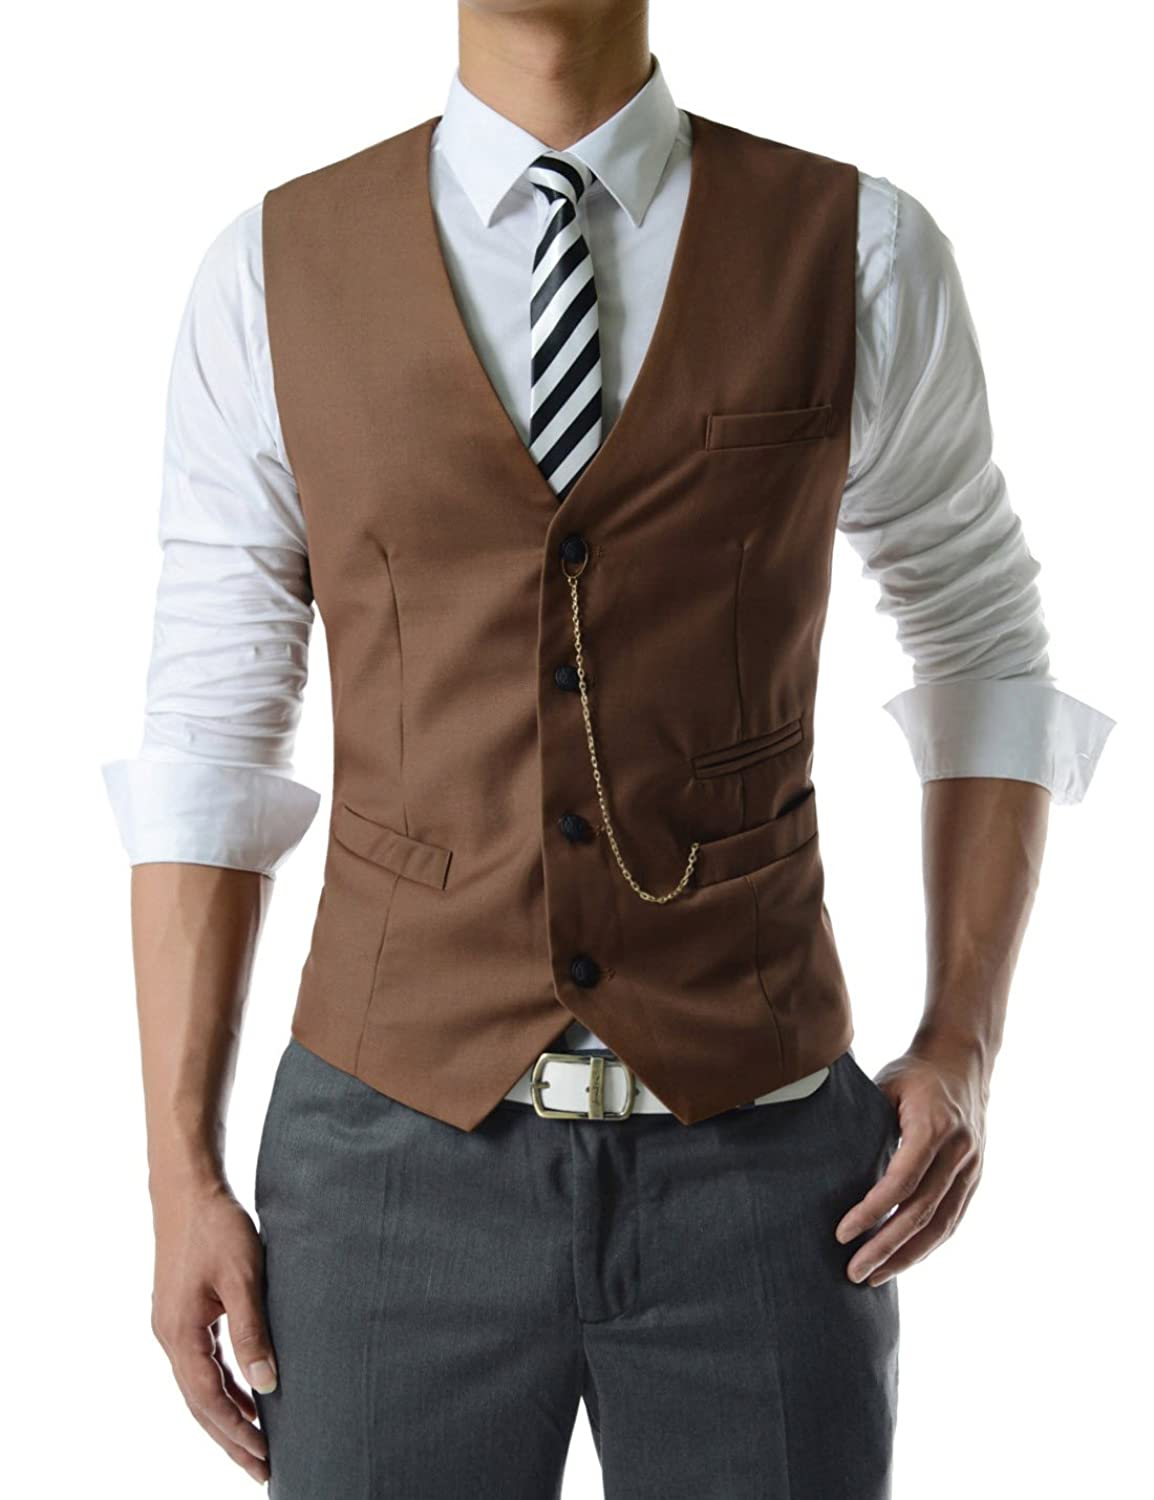 Edwardian Men's Fashion & Clothing SVE TheLees Mens slim fit chain point 3 button vest $33.99 AT vintagedancer.com